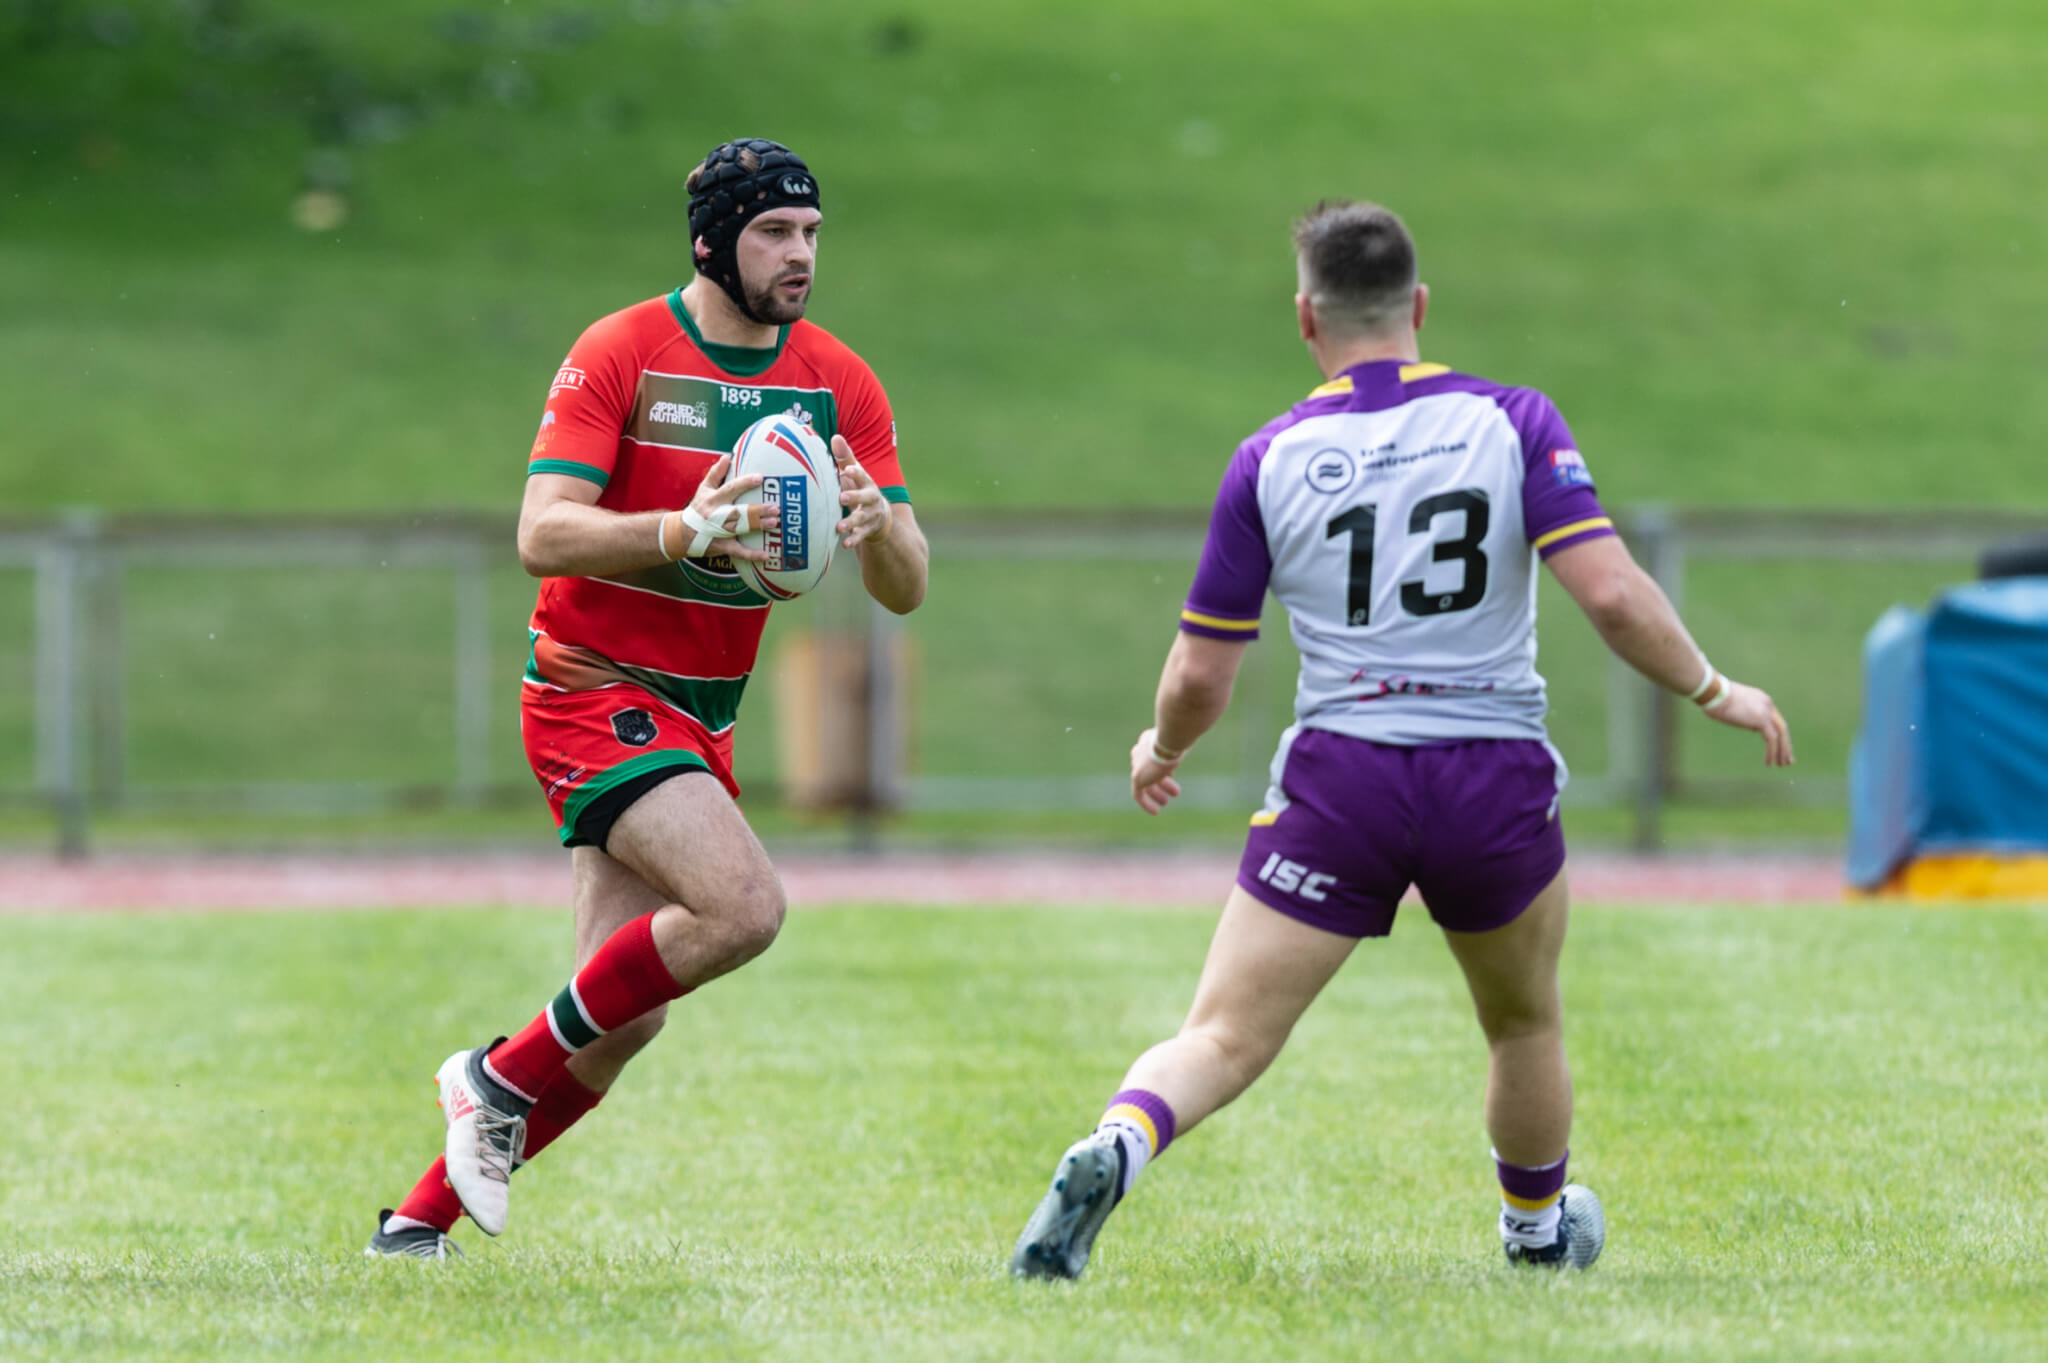 Preview: Newcastle Thunder v North Wales Crusaders